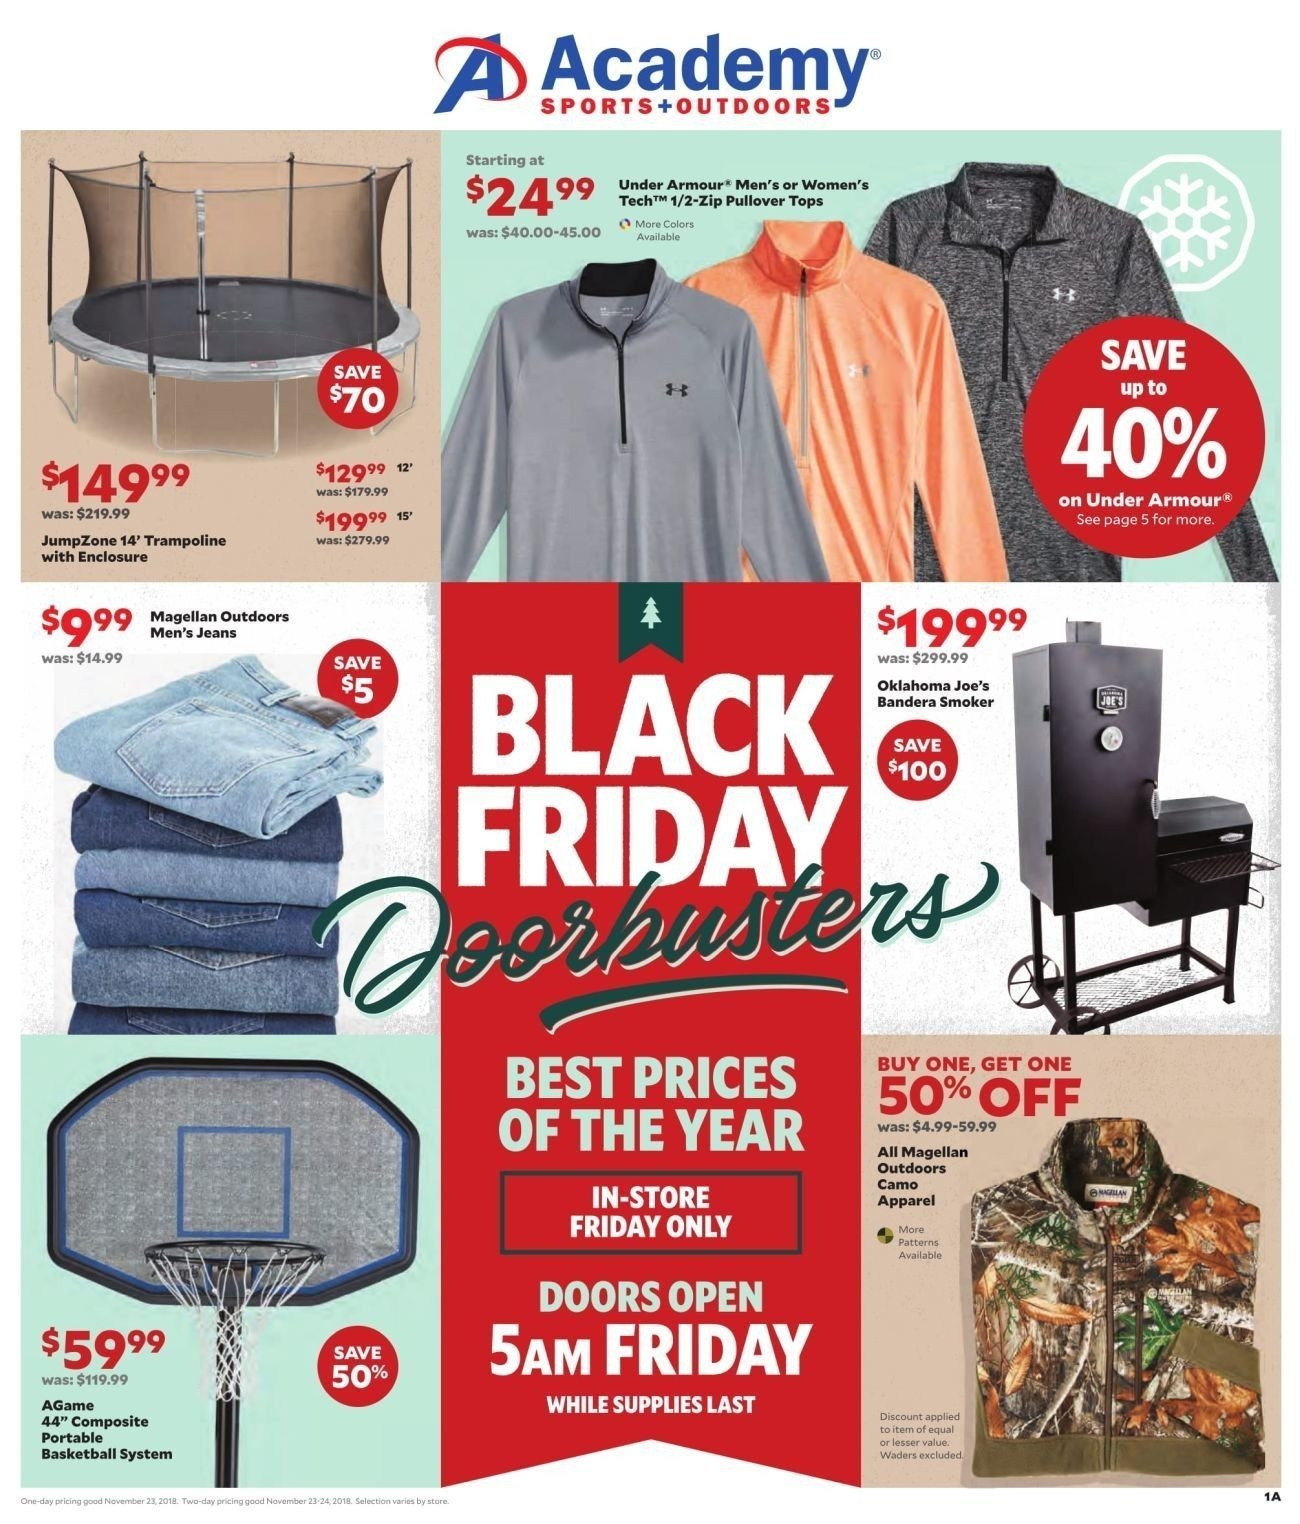 Academy Sports and Outdoors 2018 Black Friday Ad Page 1